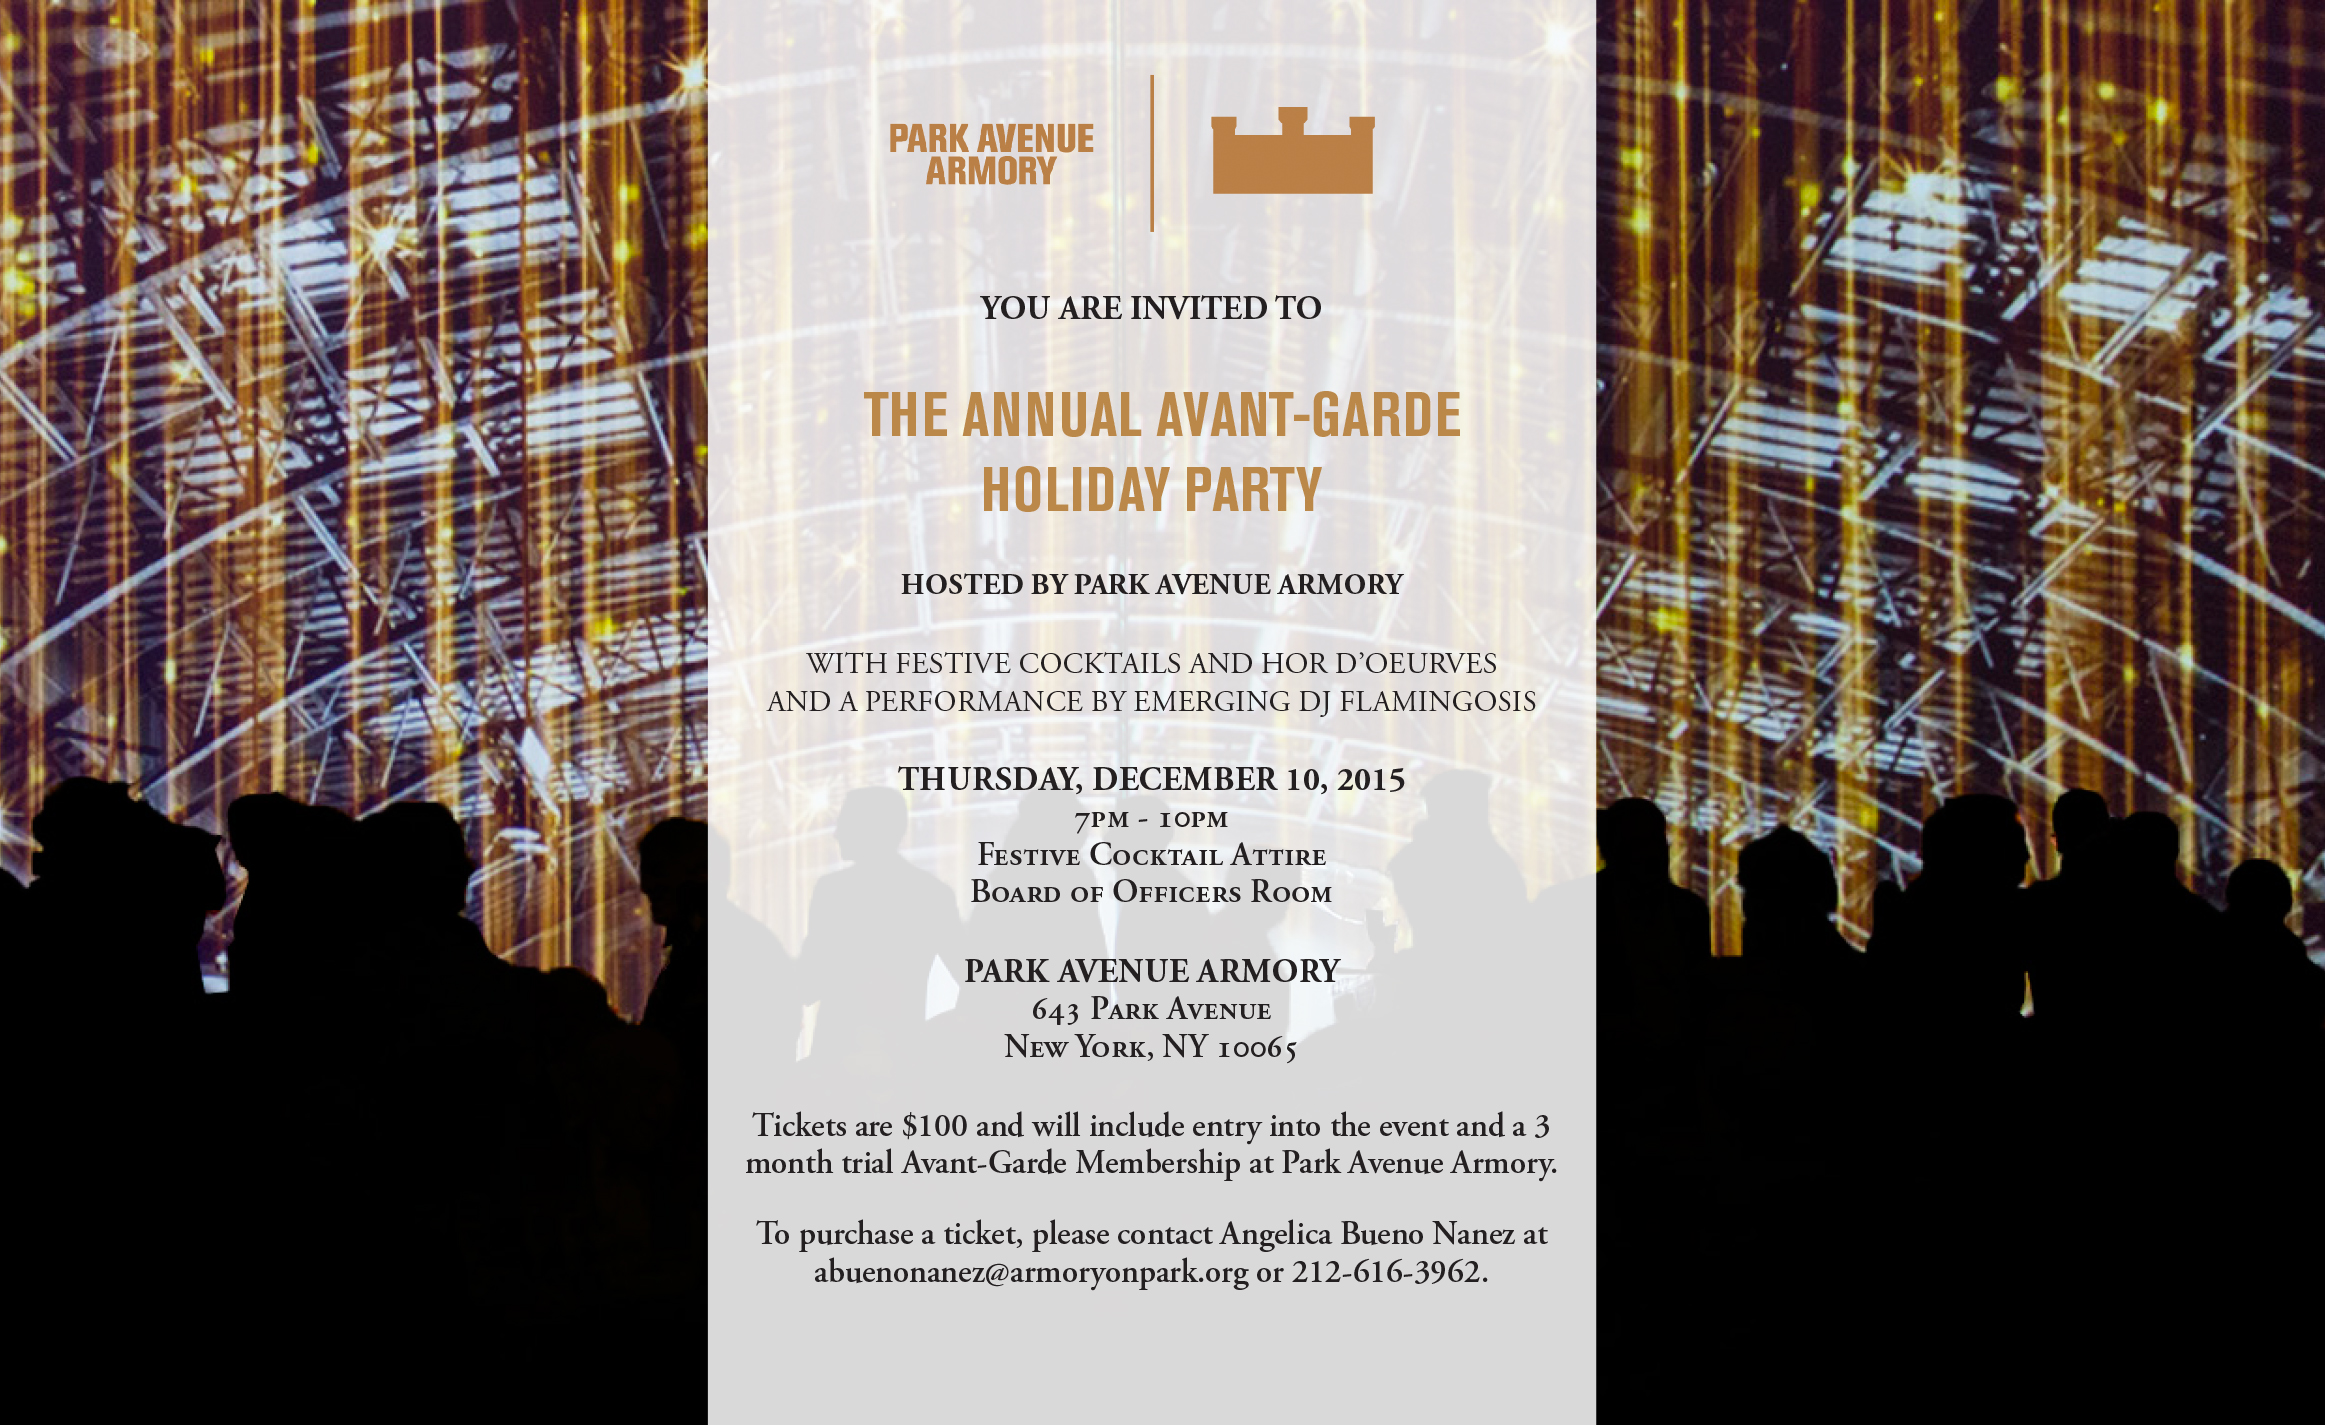 We Are Delighted To Invite You Celebrate The Season With Park Avenue Armory At Our Annual Young Patrons Holiday Party On Thursday December 10th